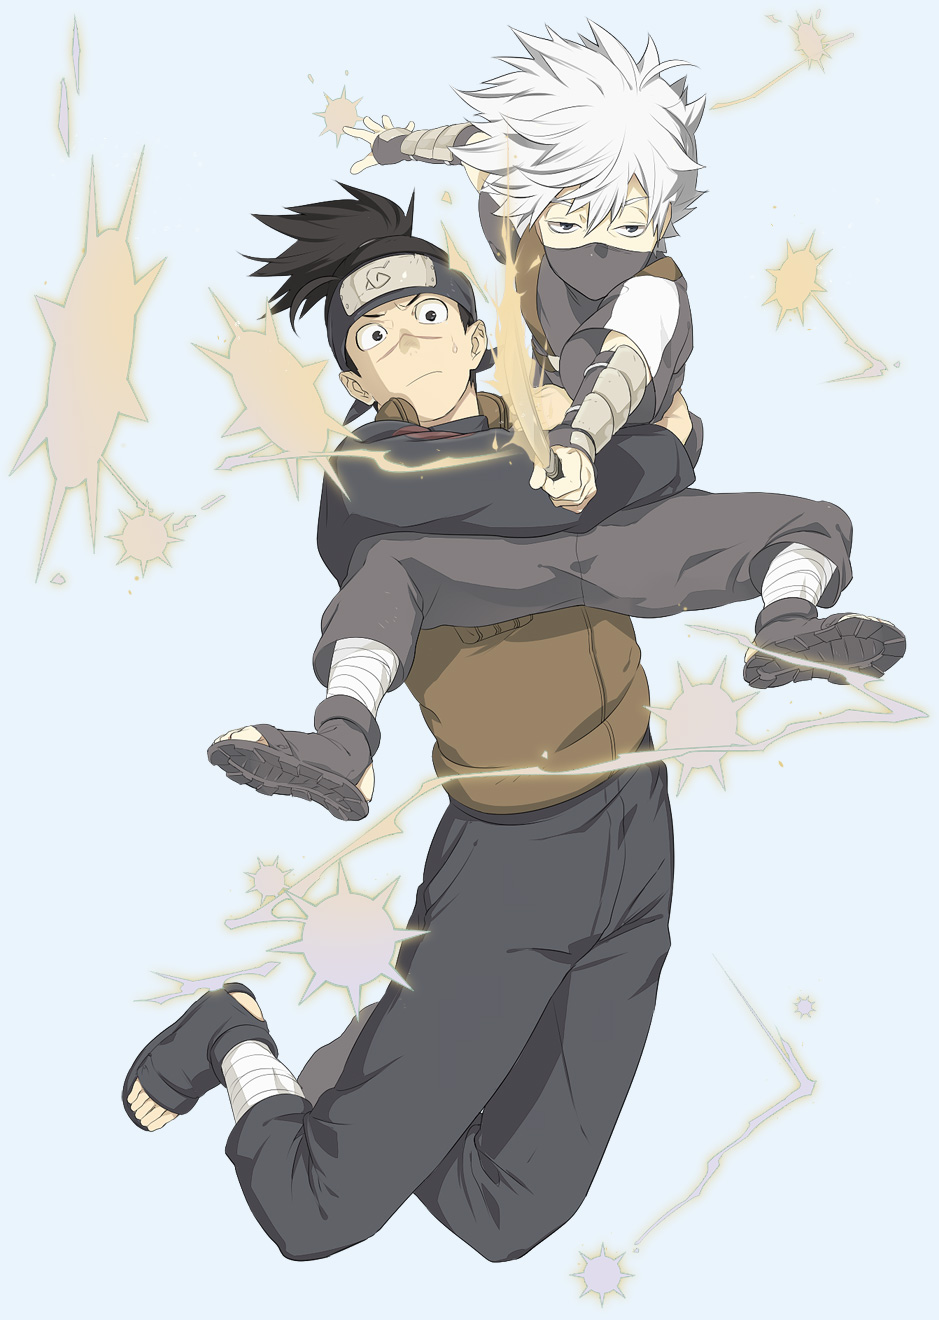 Amazing Wallpaper Naruto Cute - NARUTO  You Should Have_93861.jpg